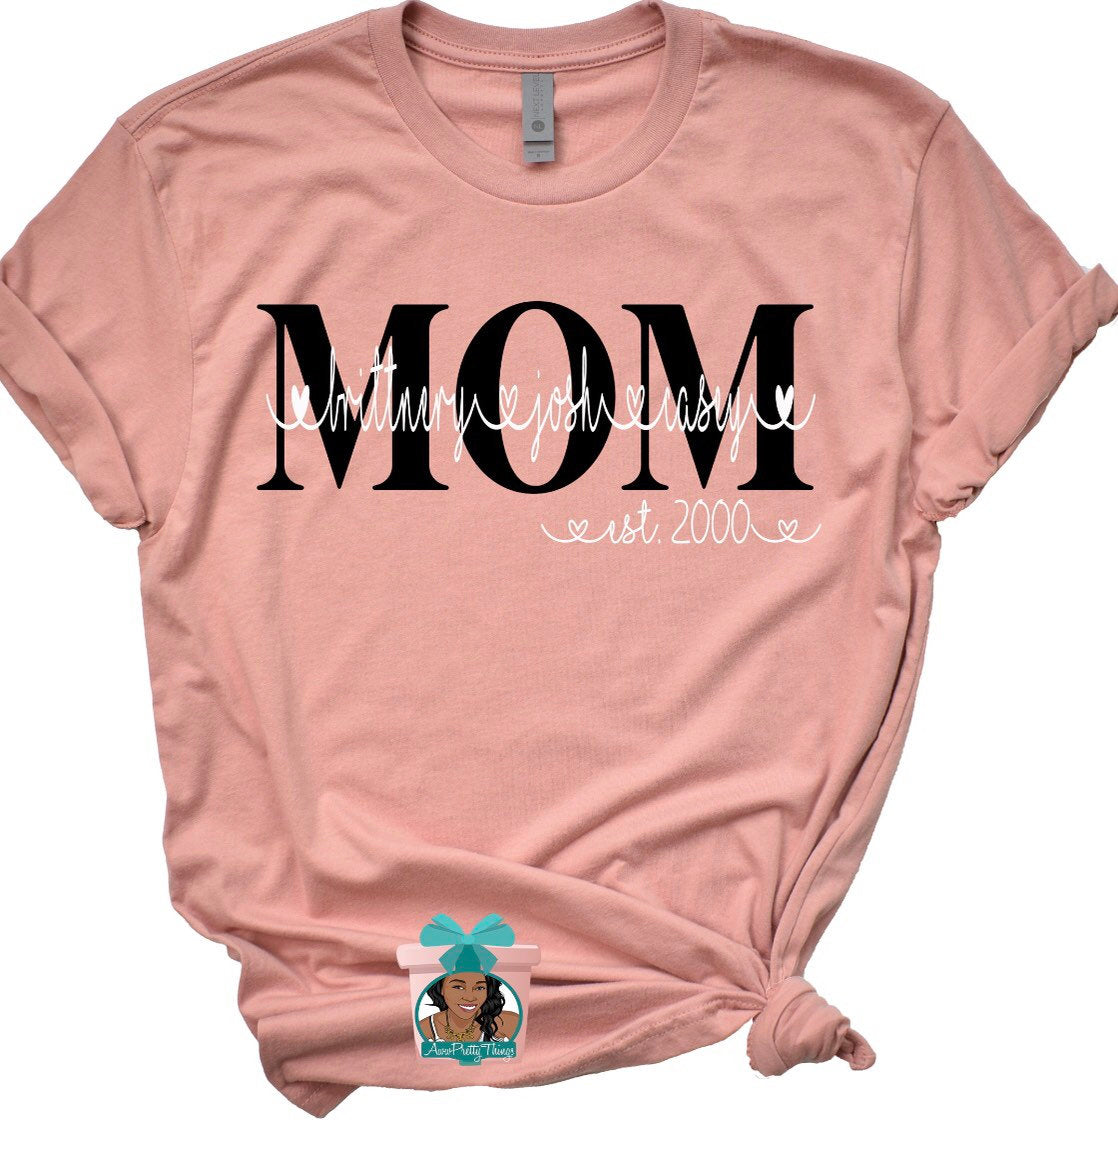 Mom Personalized T-Shirt Mothers Day T-Shirt Grandma Personalized T-Shirt